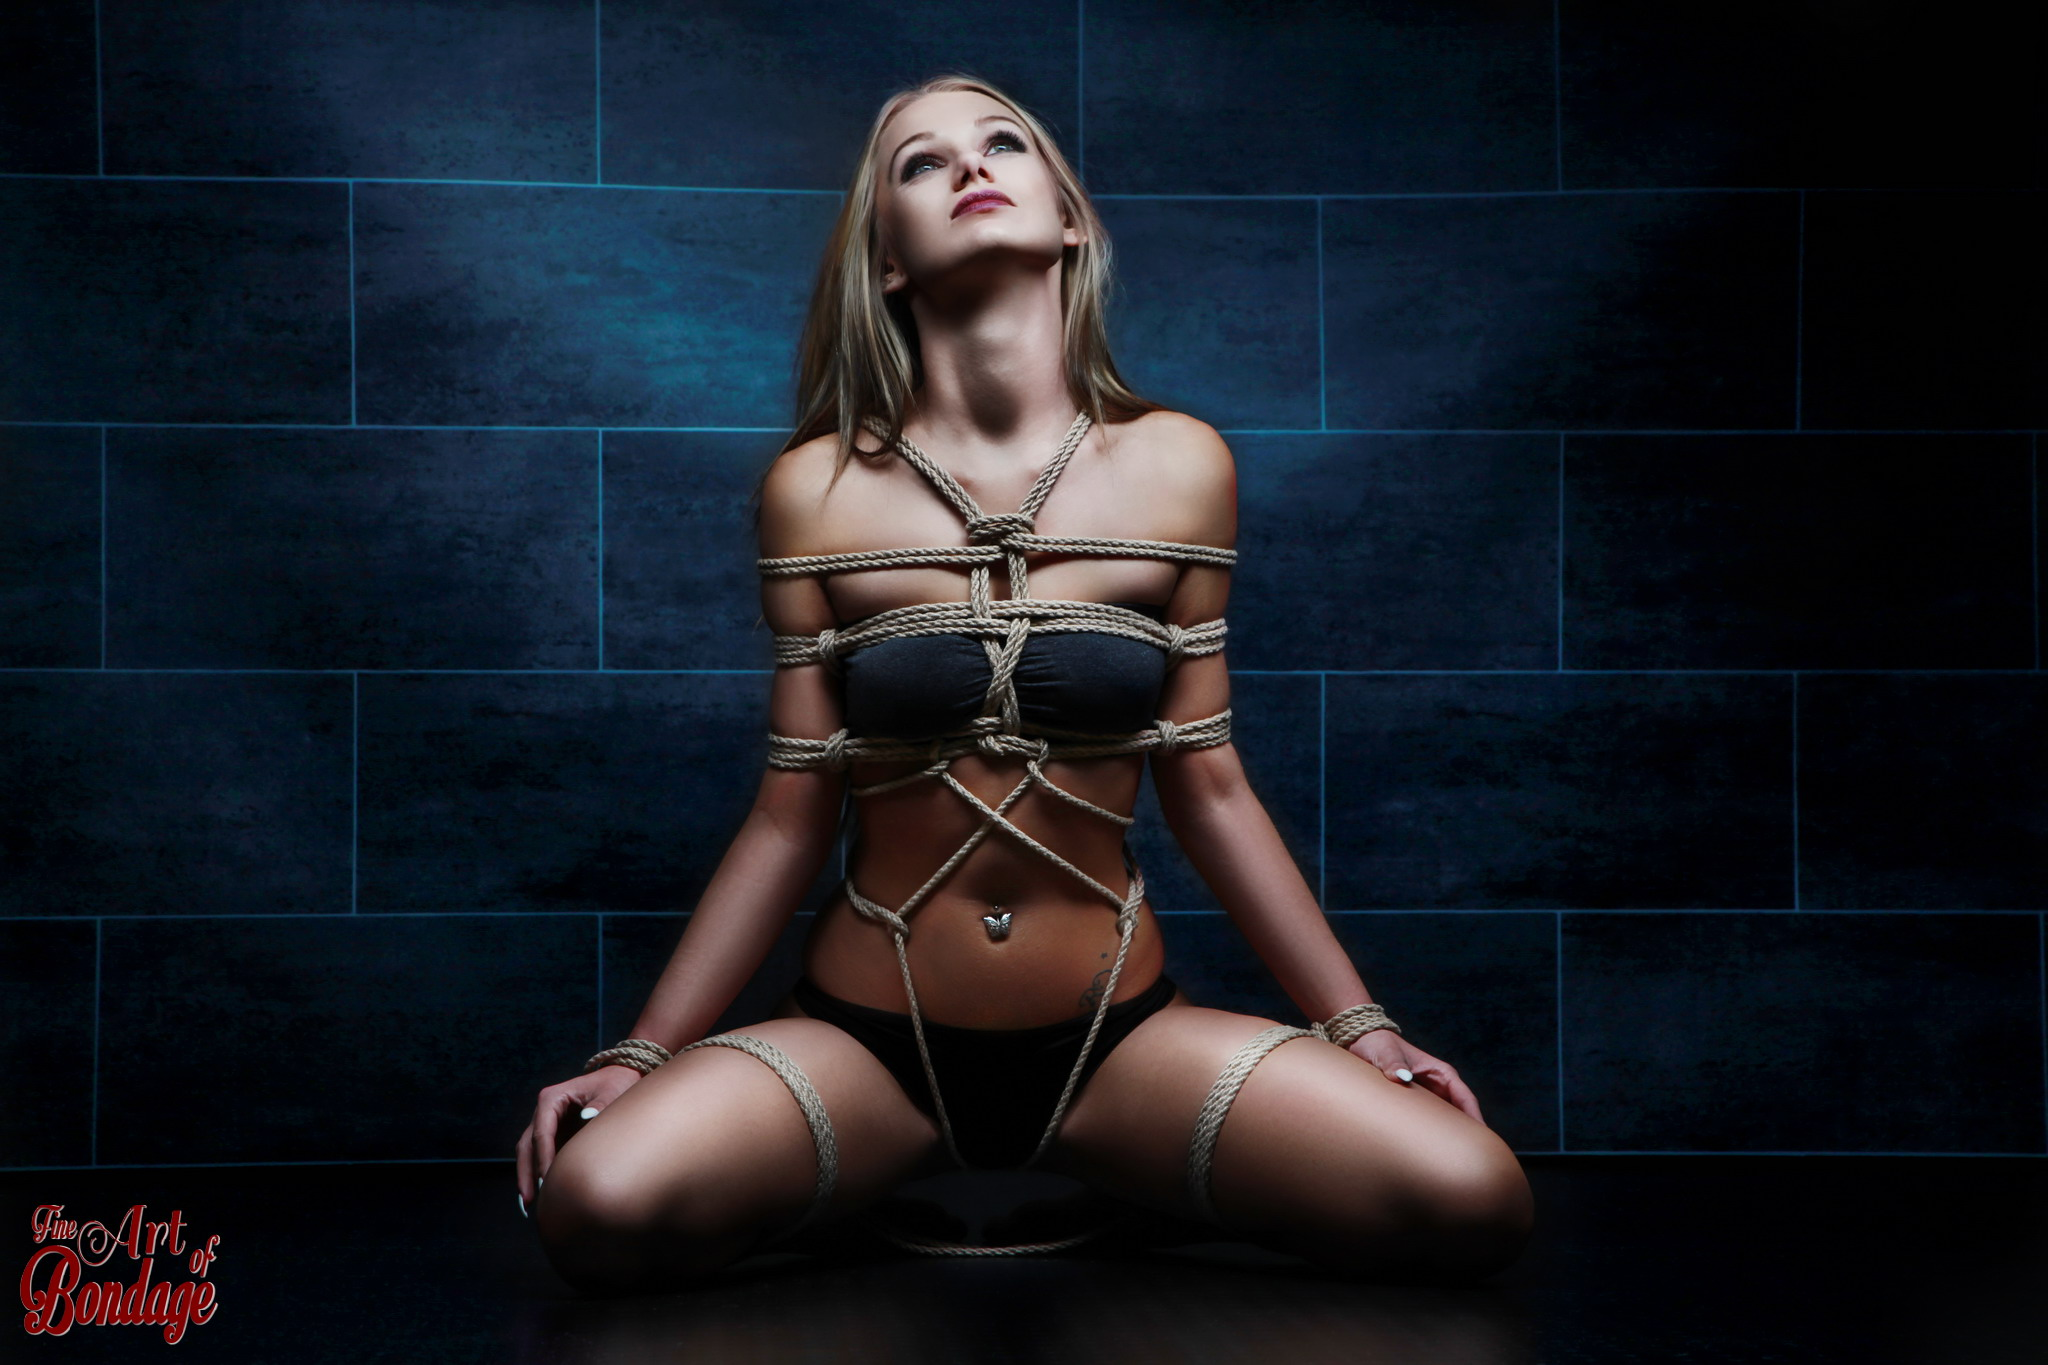 Opinion, bondage in tied up woman